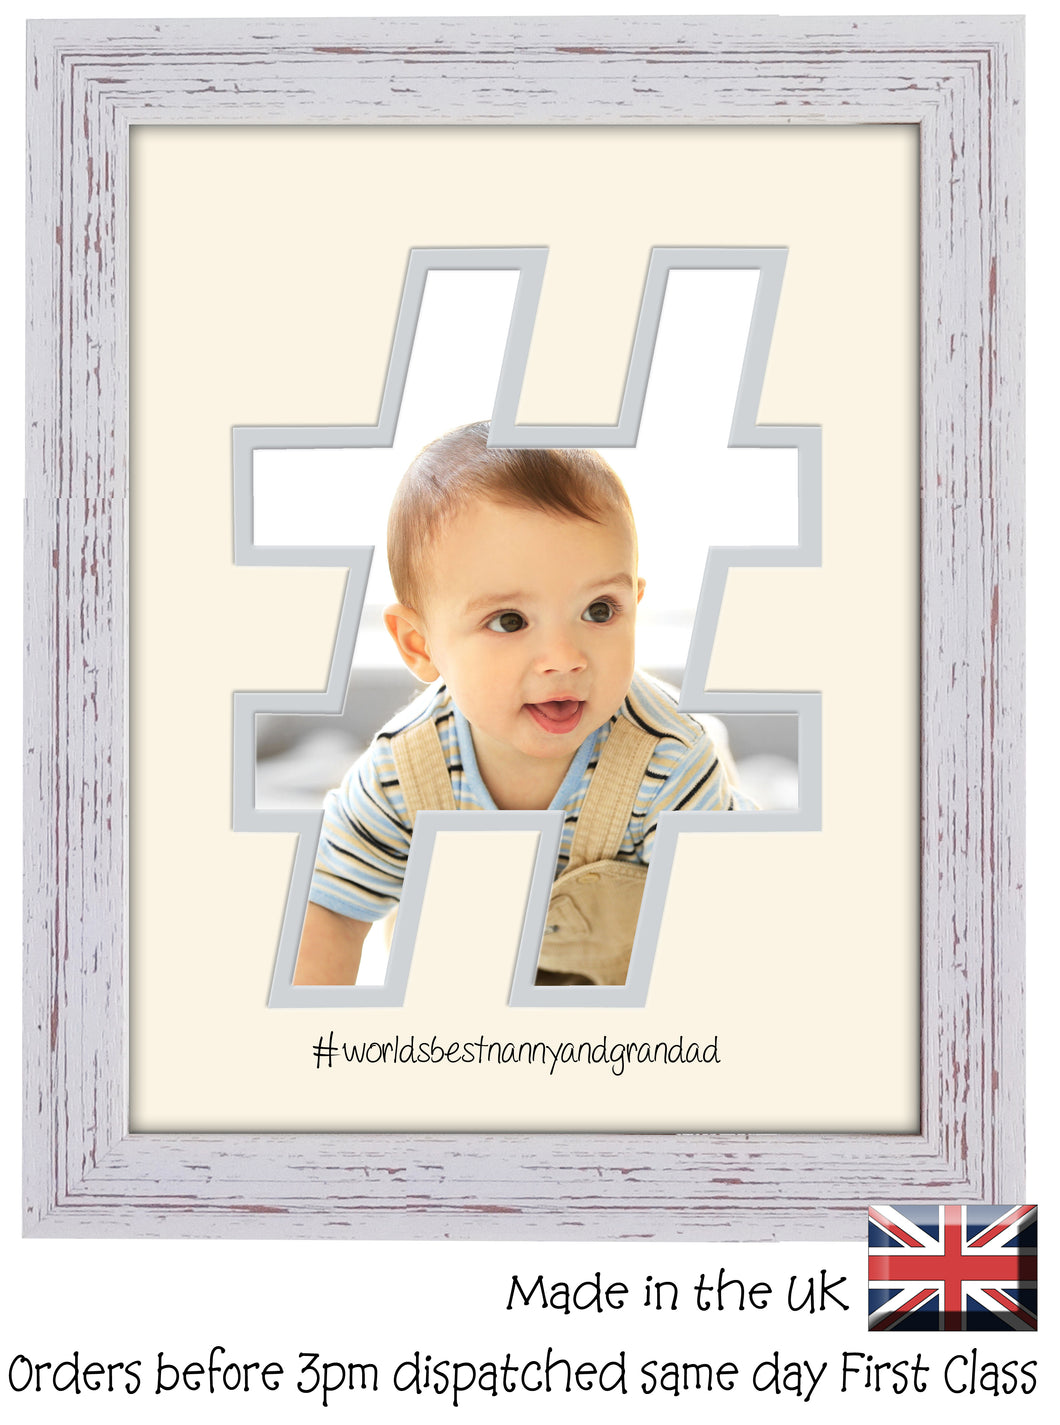 Nanny and Grandad Photo Frame World's Best Nanny and Grandad Hashtag photo frame 6